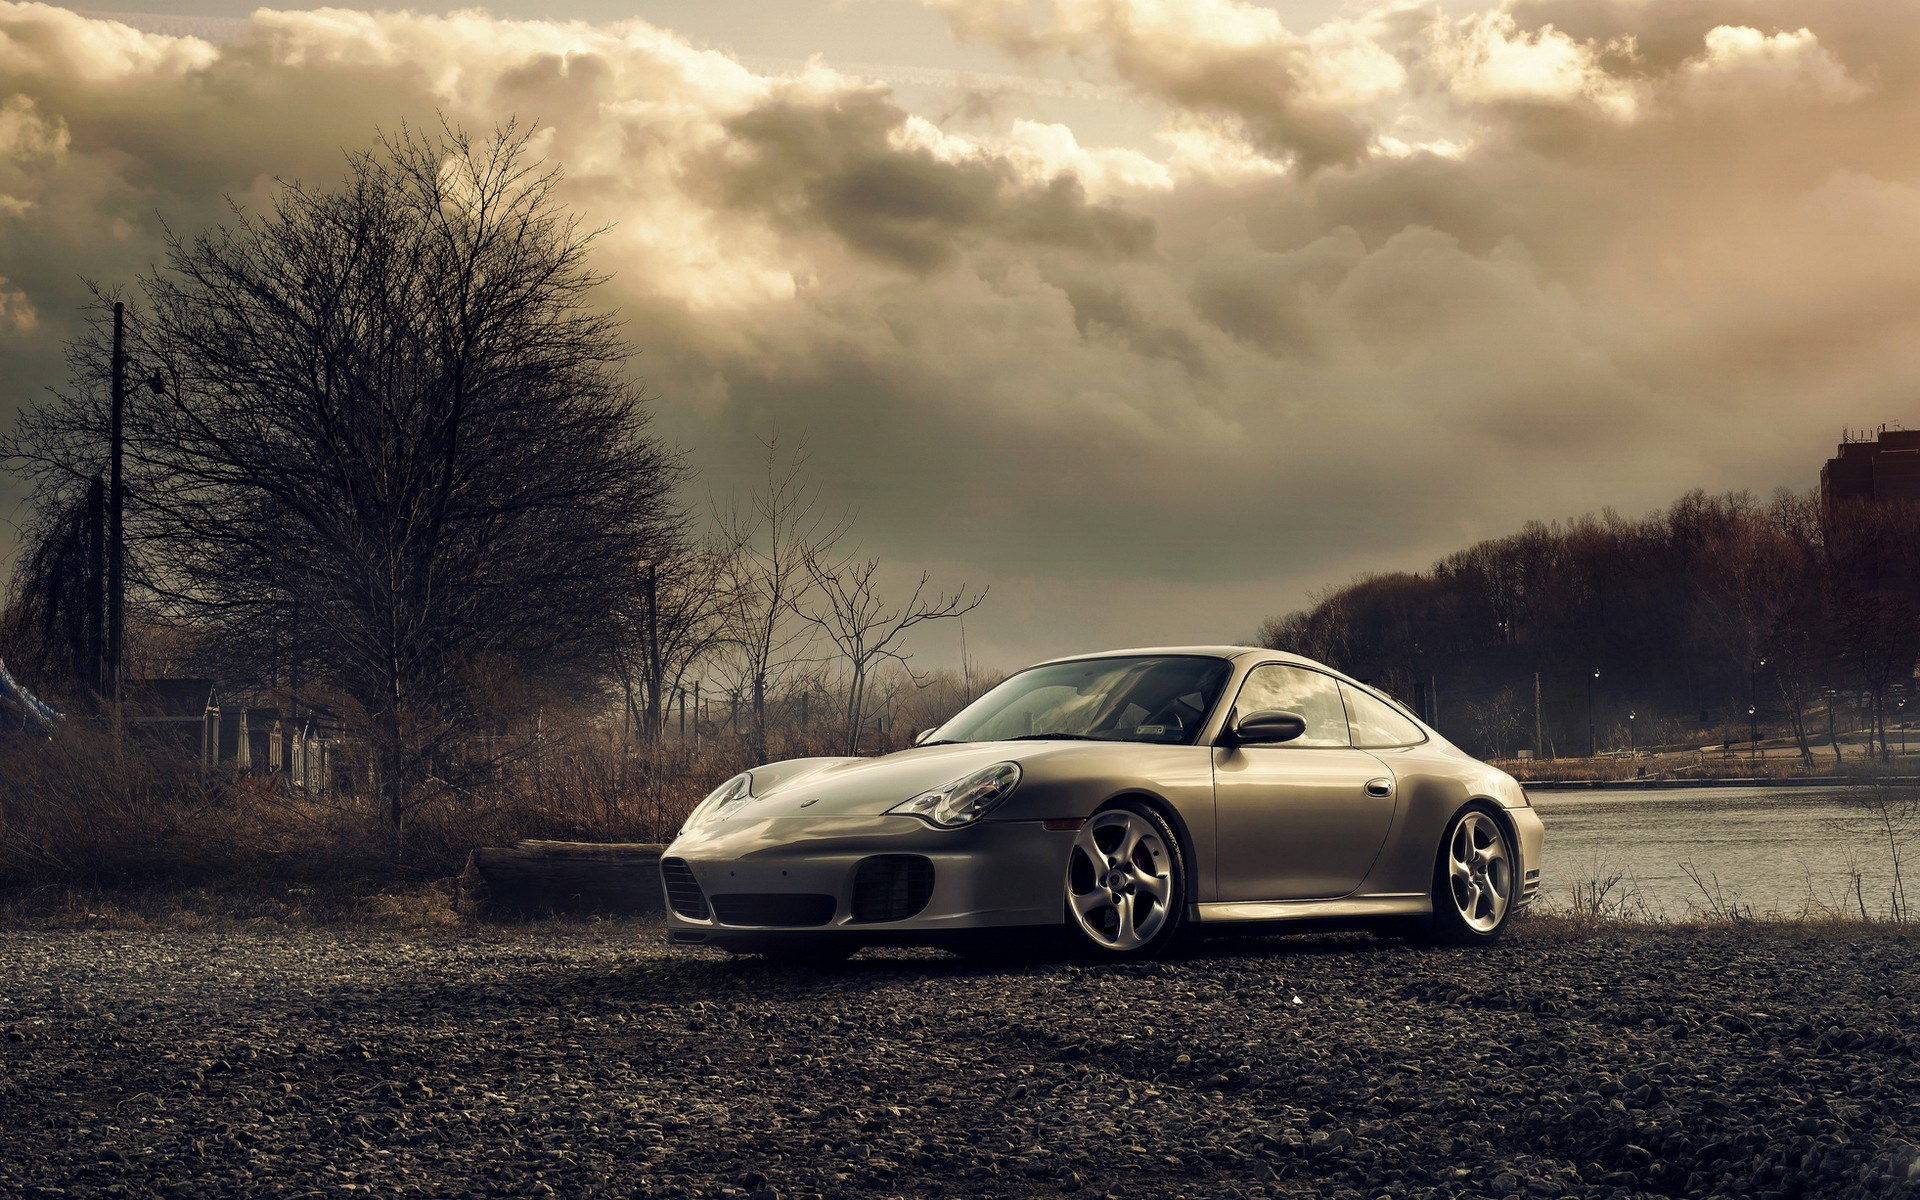 porsche 911 full hd wallpaper and background image | 1920x1200 | id